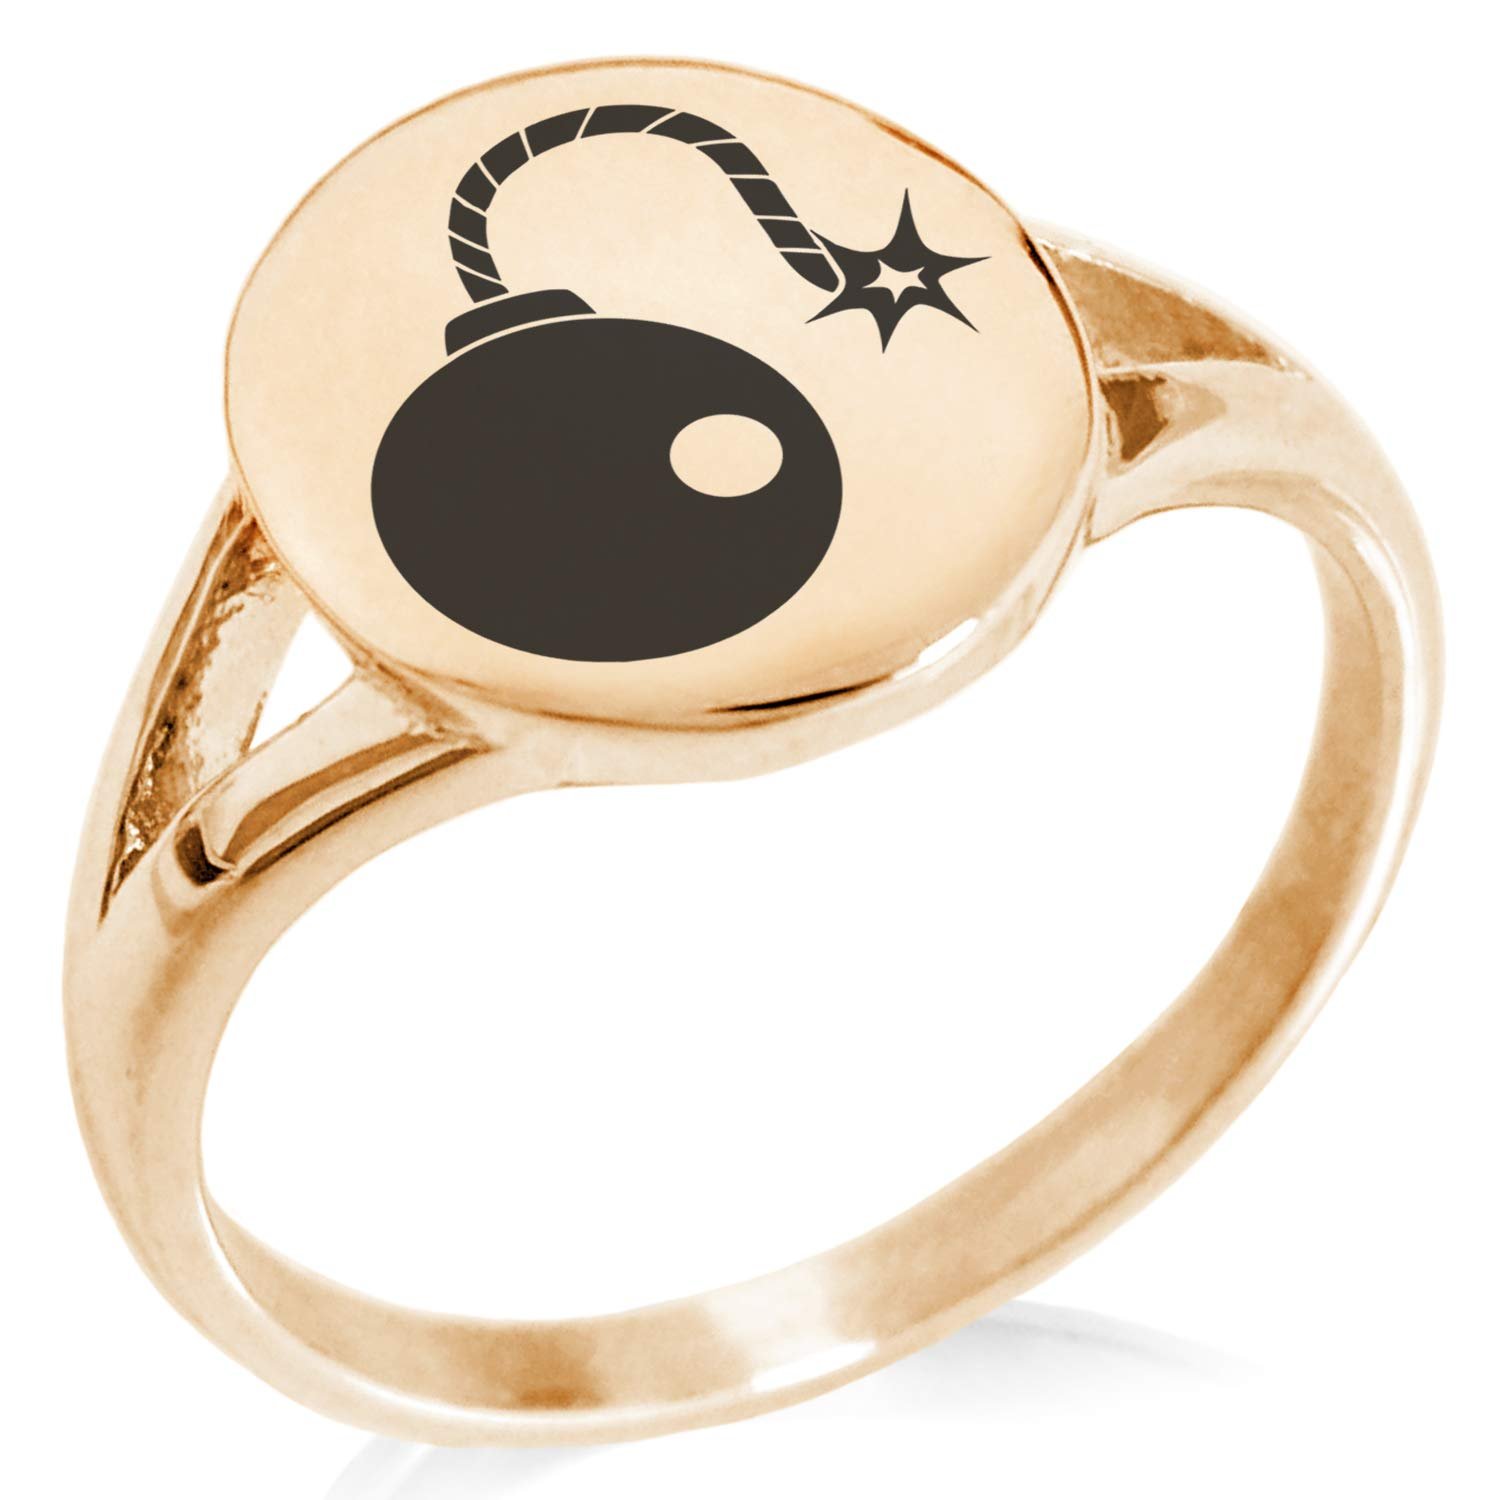 Tioneer Stainless Steel Pirate Bombardier Icon Minimalist Oval Top Polished Statement Ring